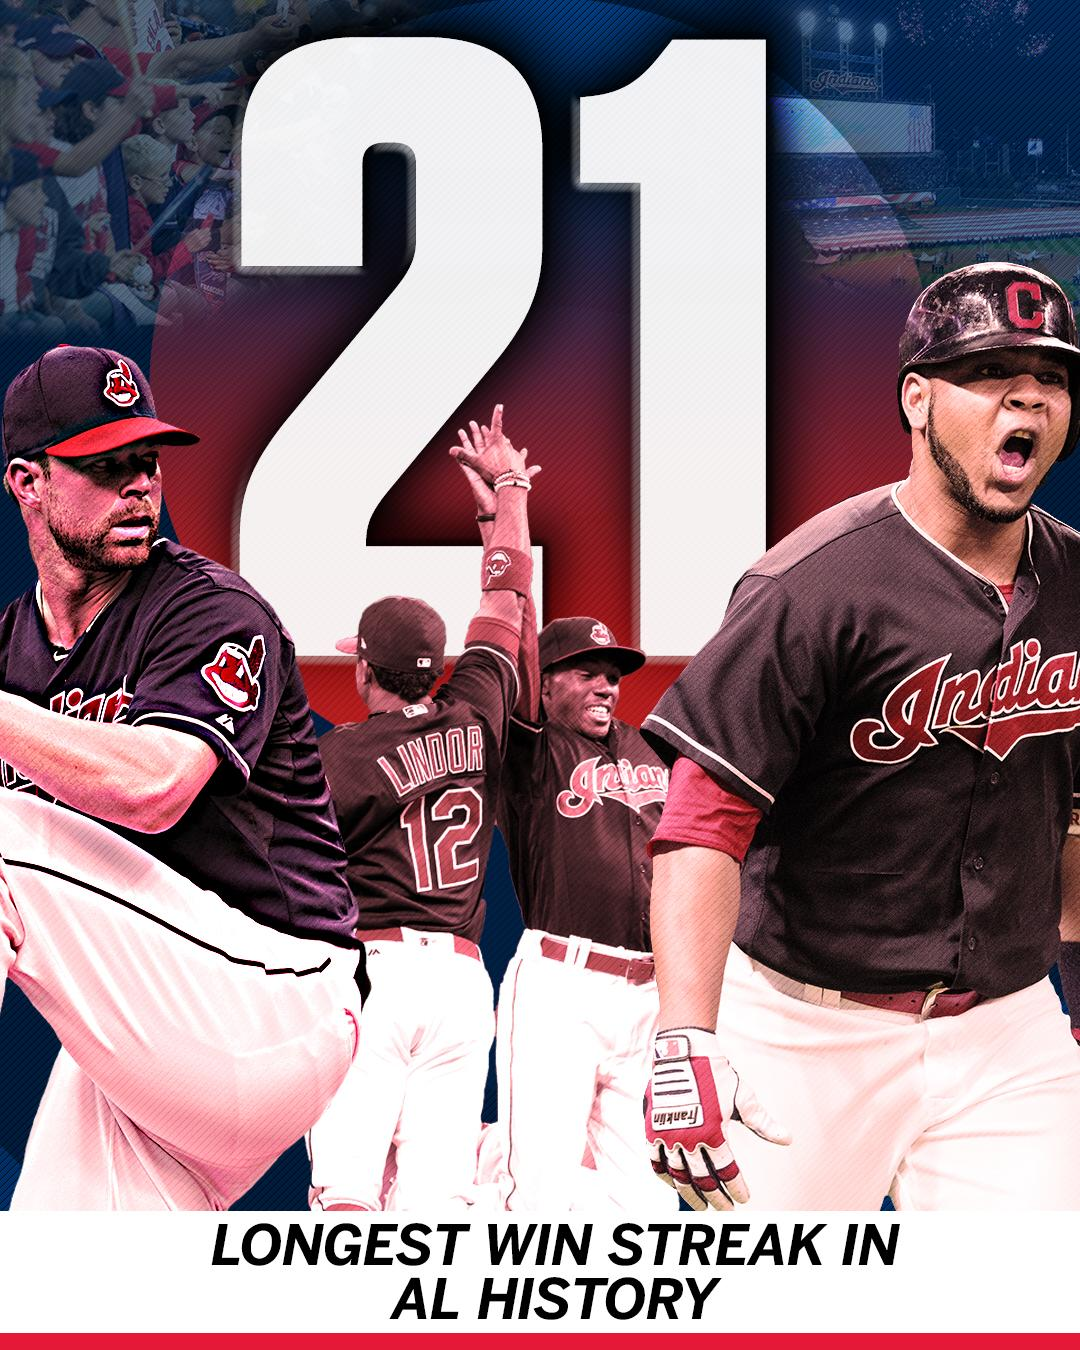 The Indians have made history! https://t.co/jUJEPdiFSs